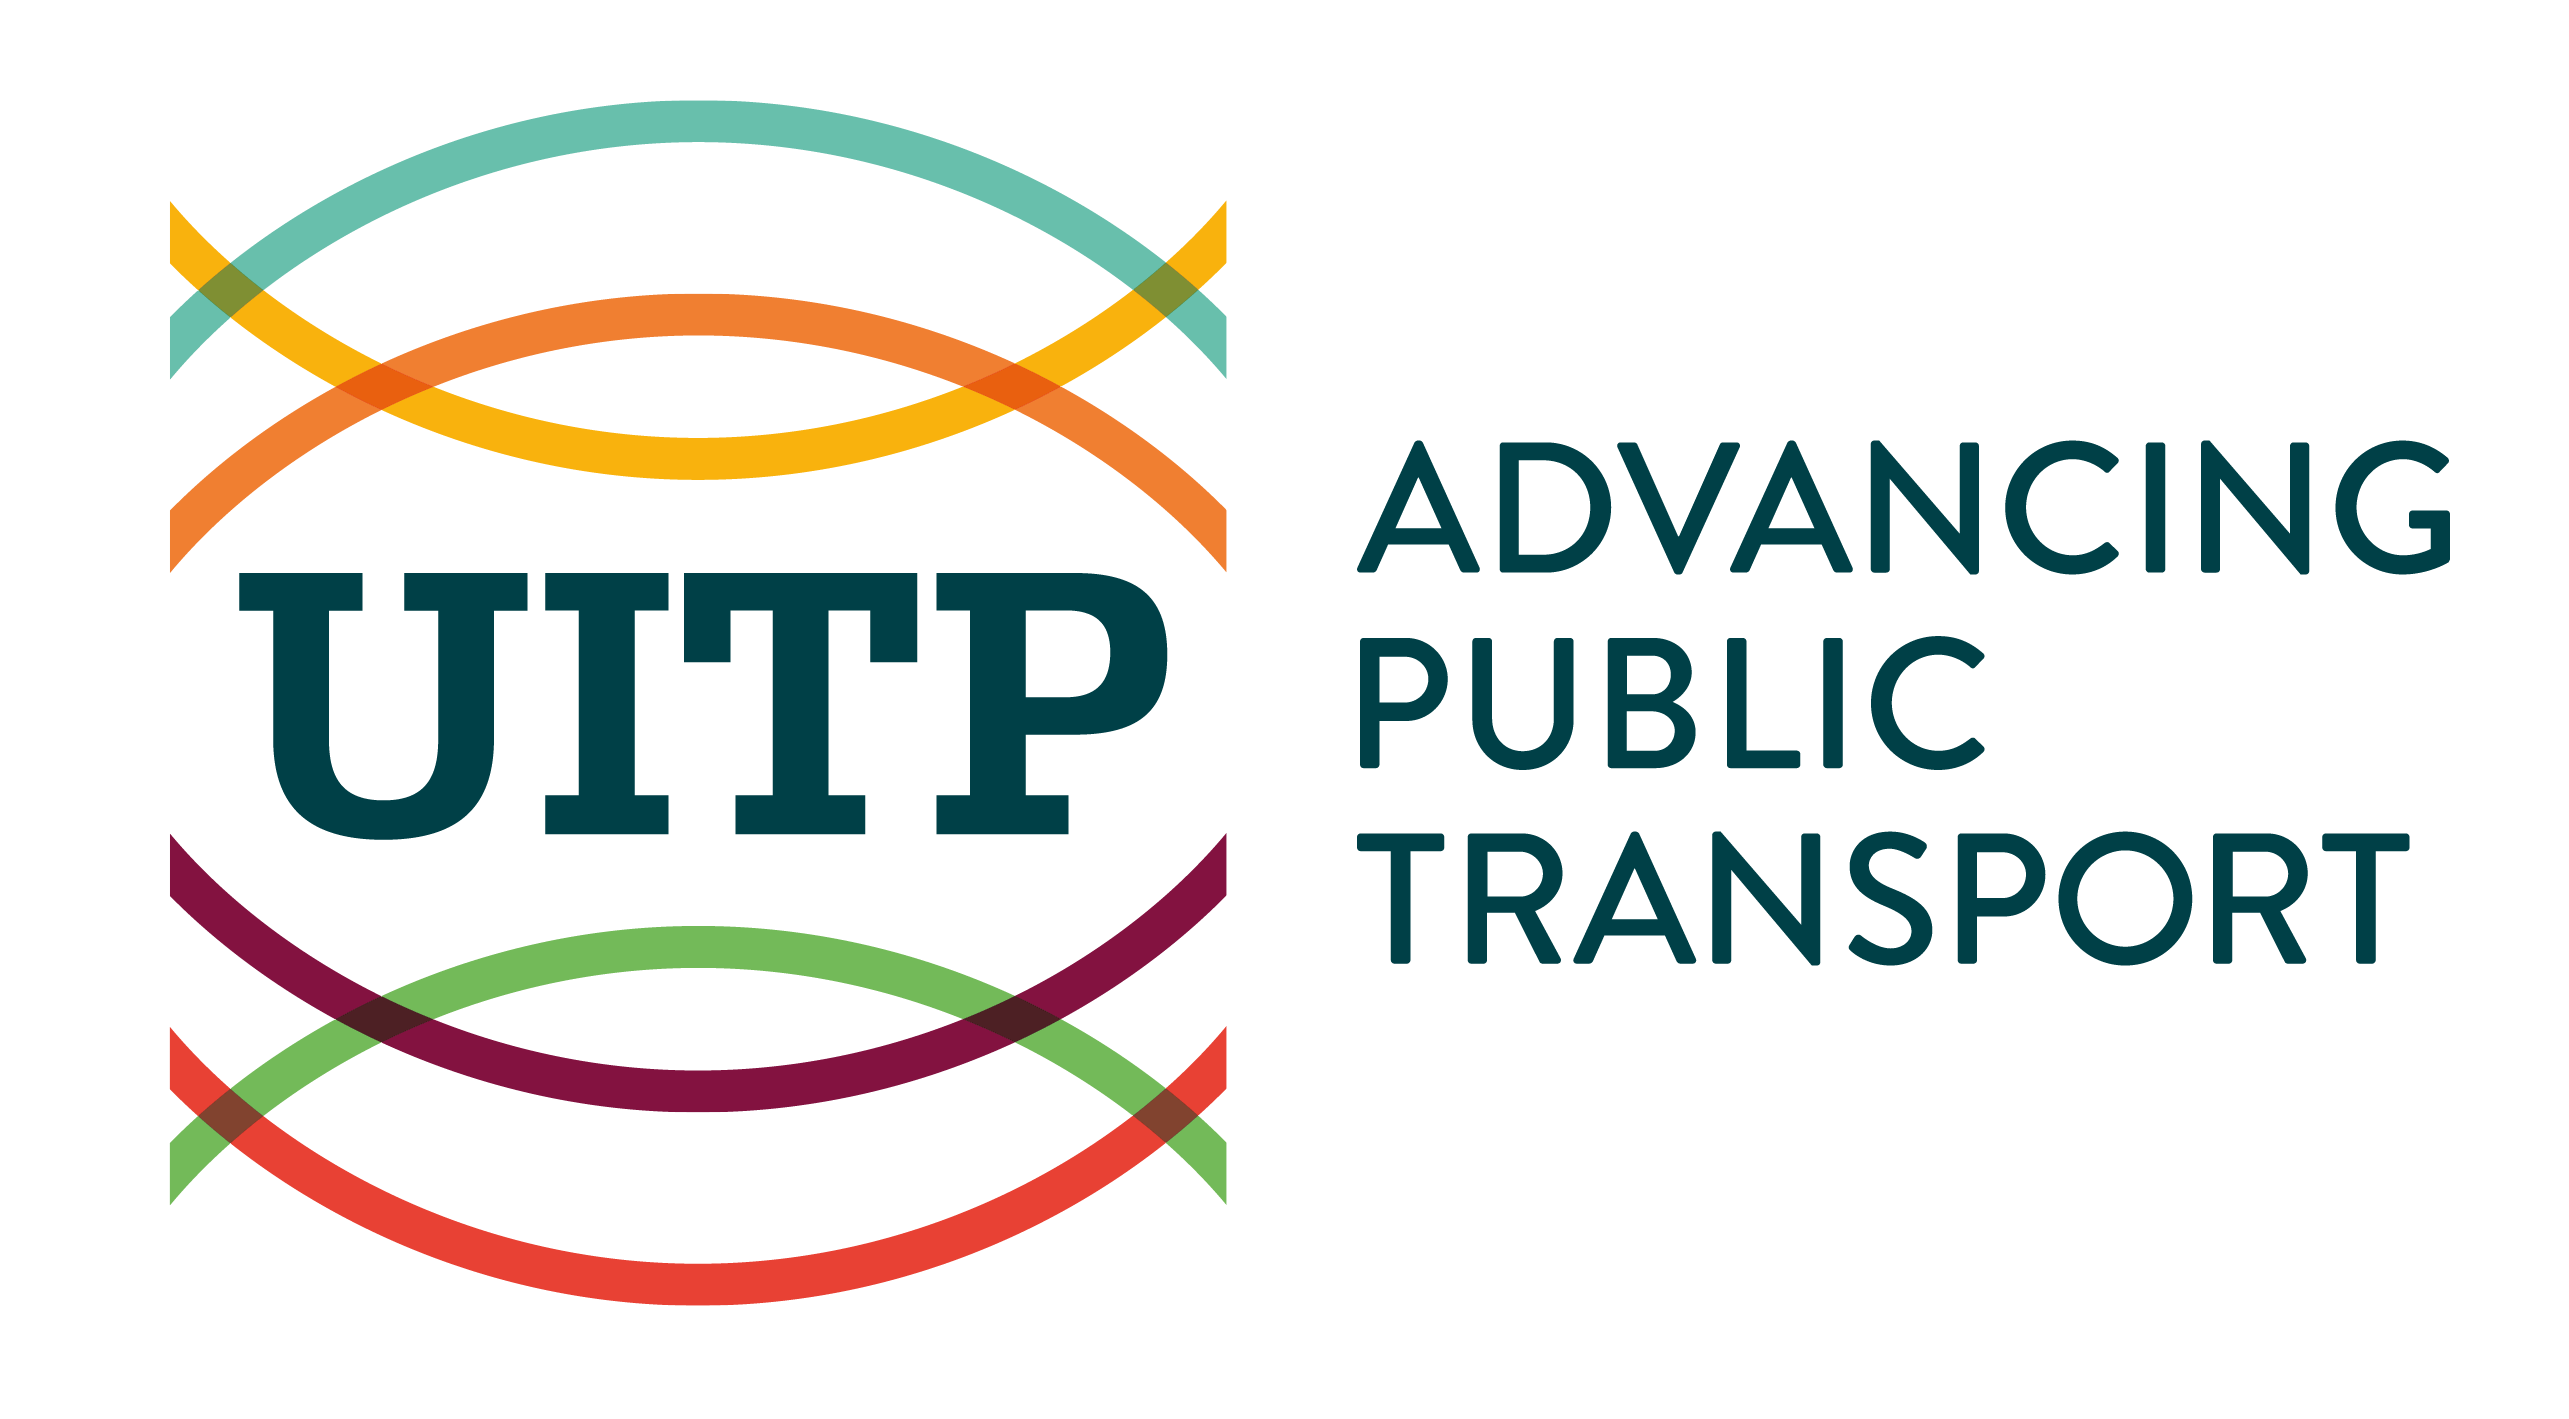 UITP – Advancing Public Transport